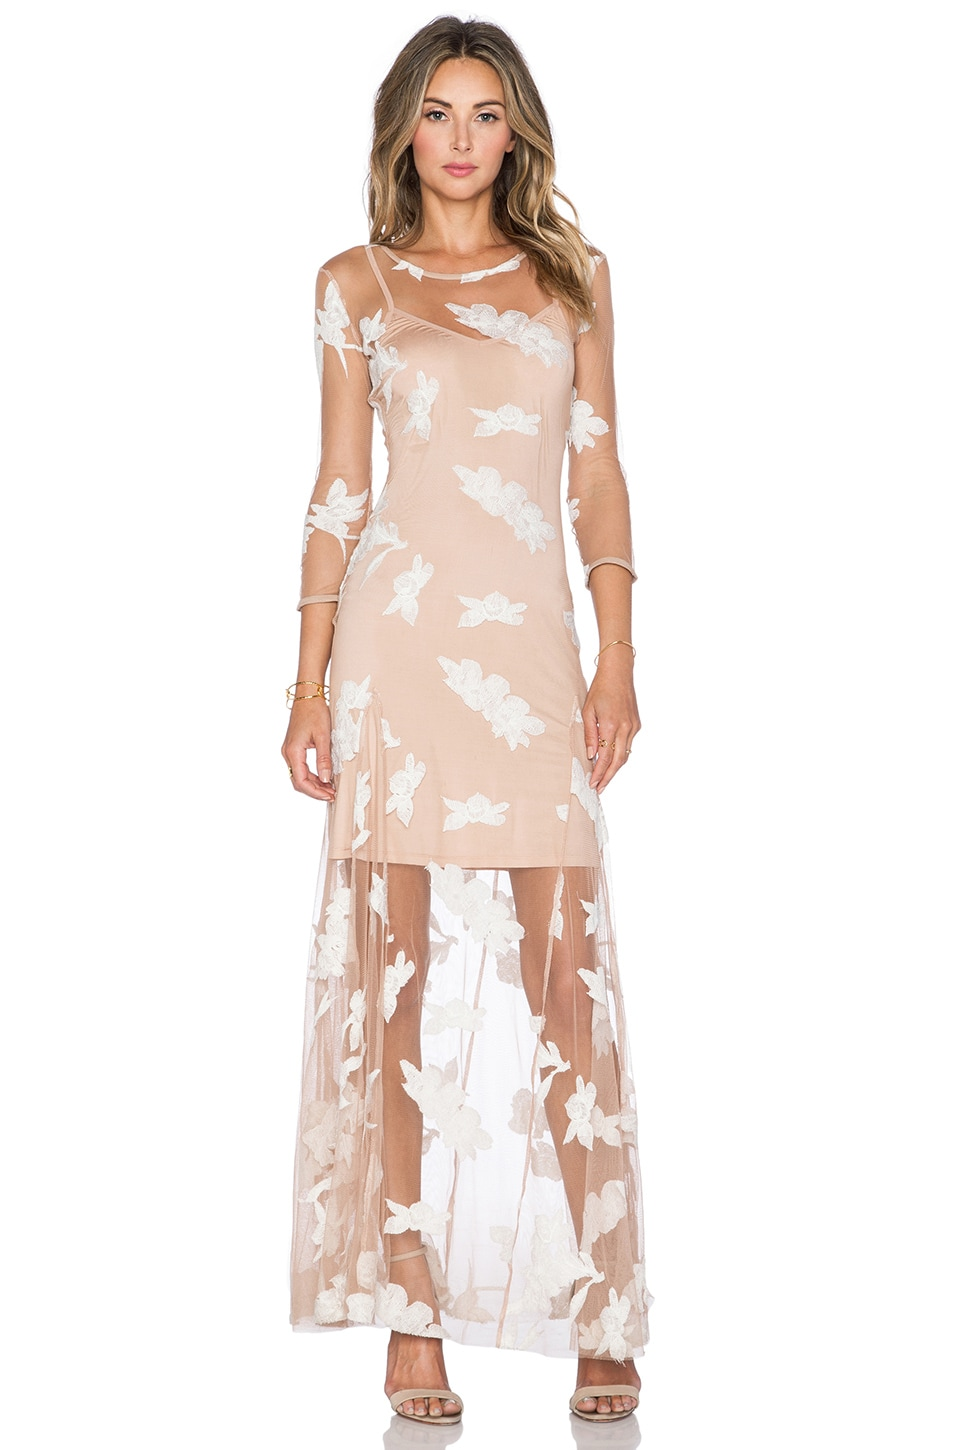 For Love & Lemons Orchid Maxi Dress in White & Nude